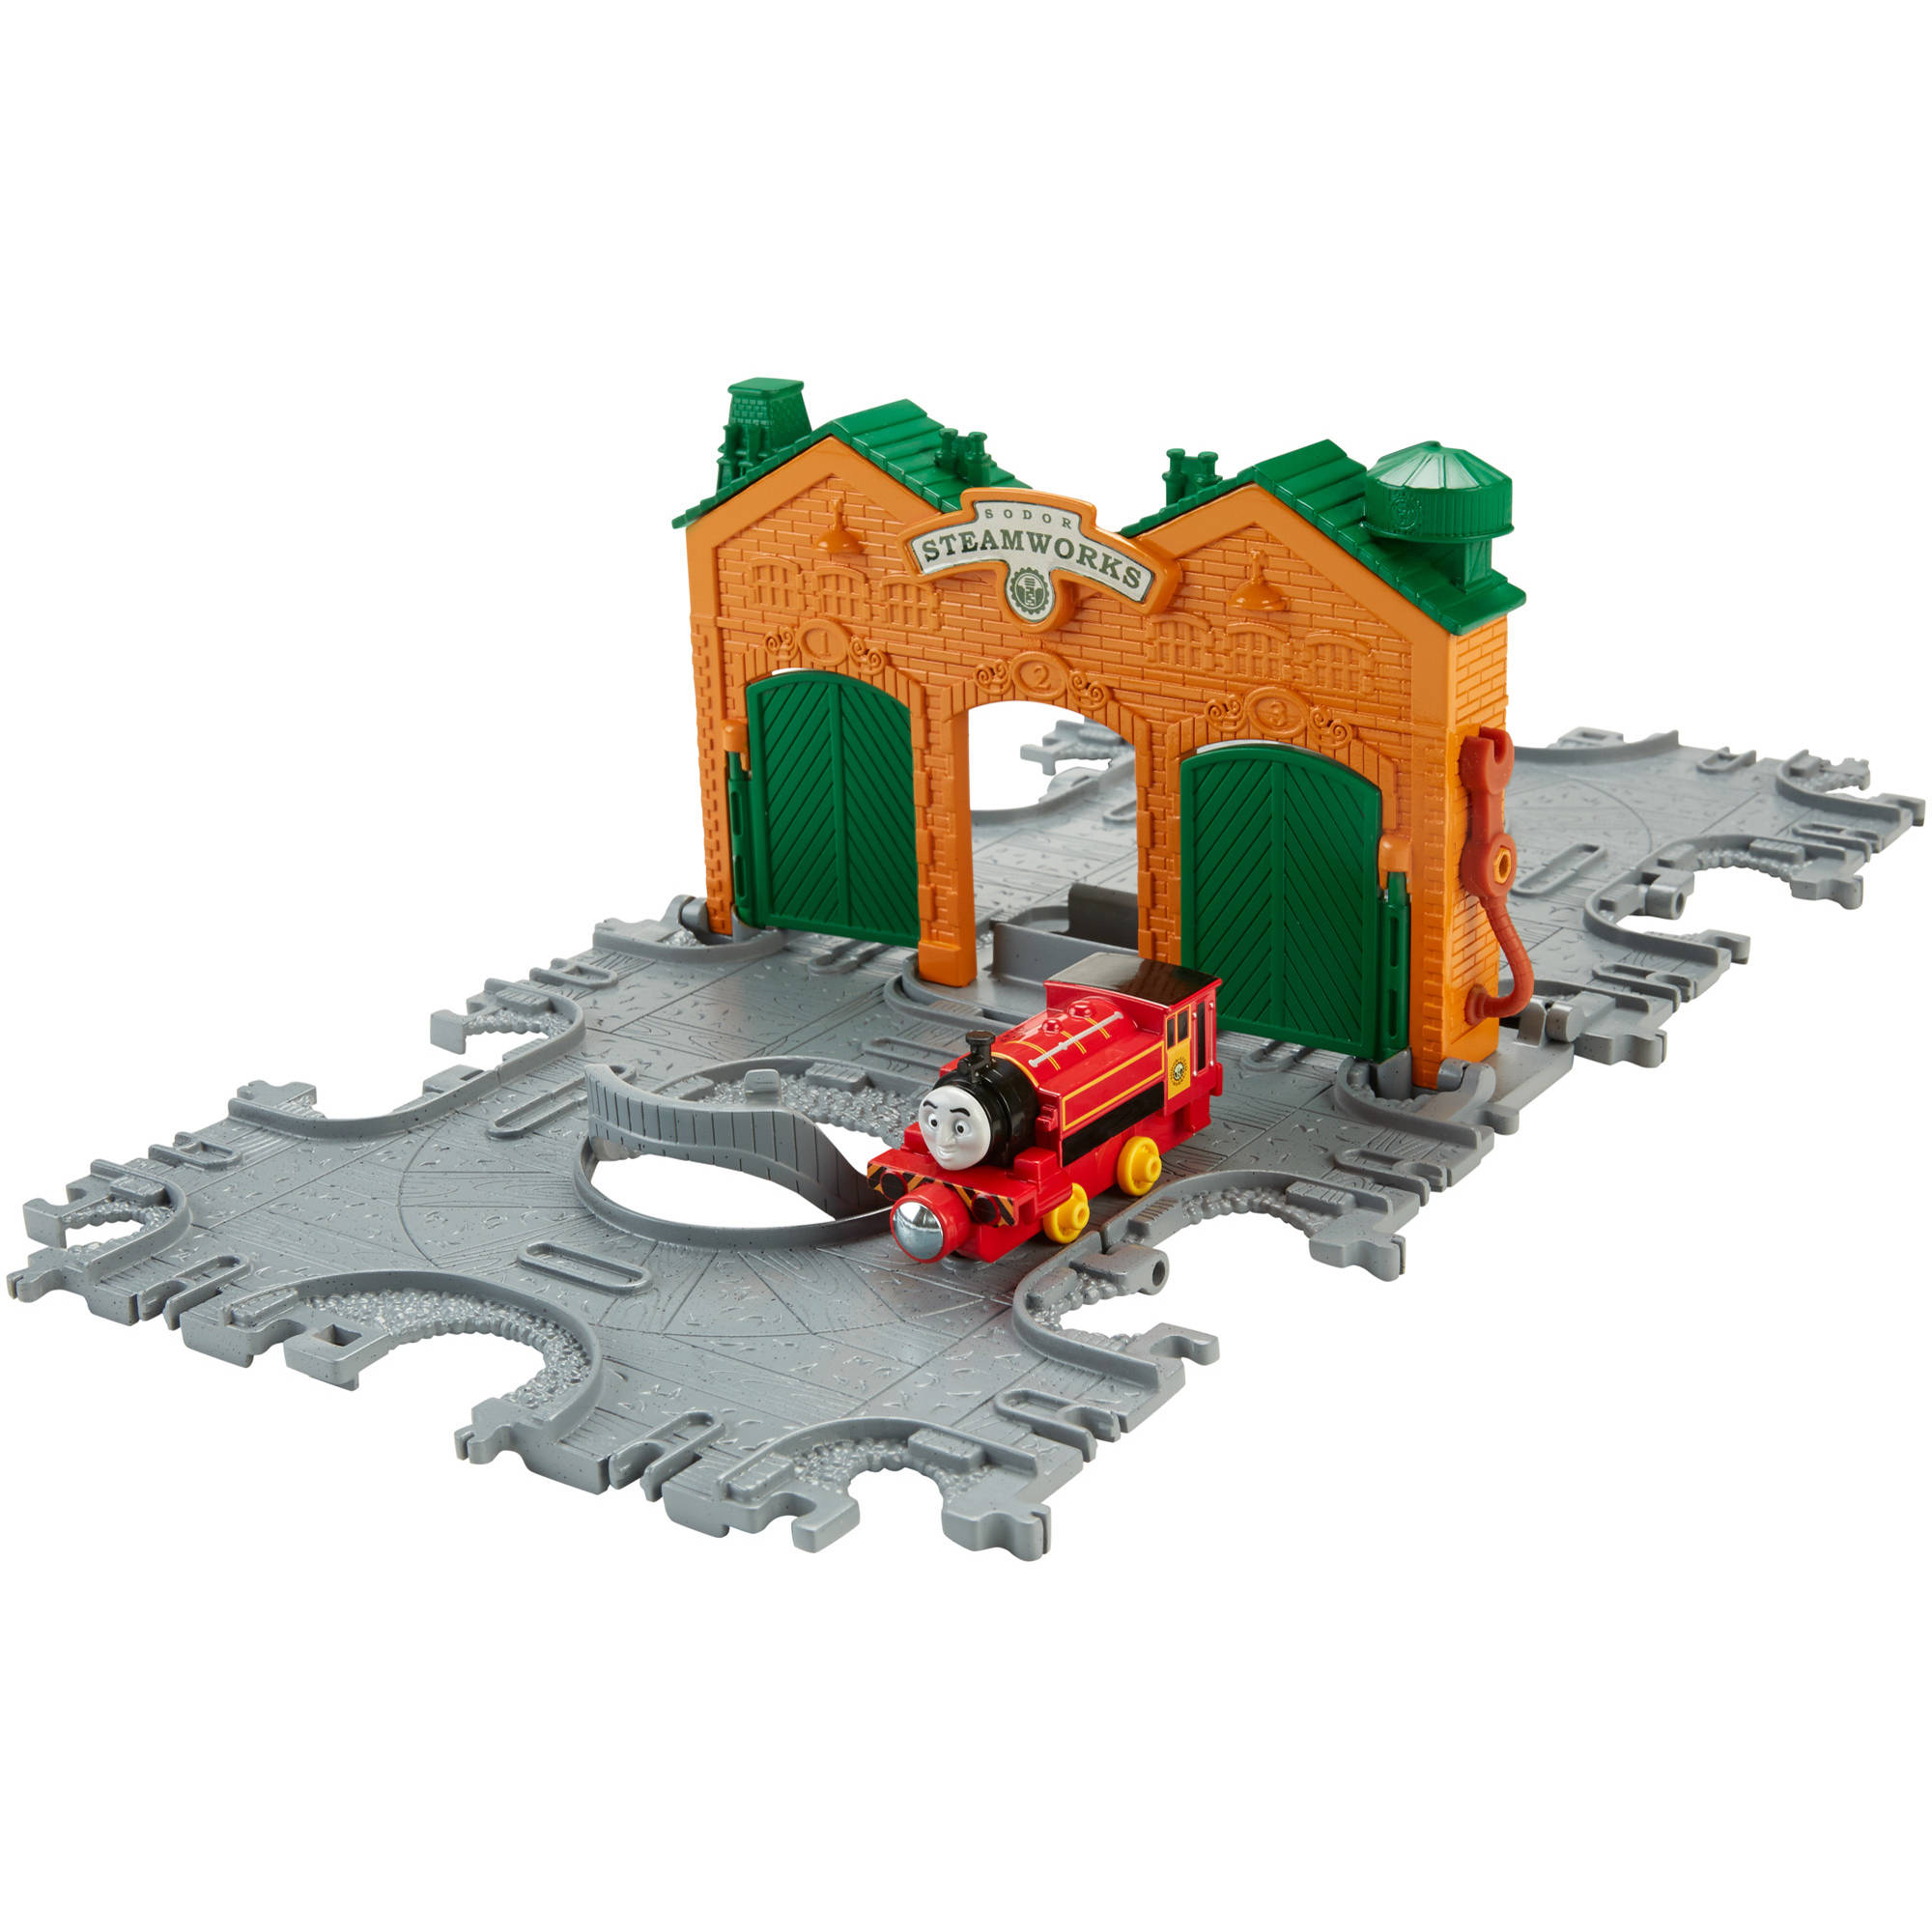 Fisher-Price Thomas and Friends Take-n-Play Steamworks Tile Tracks